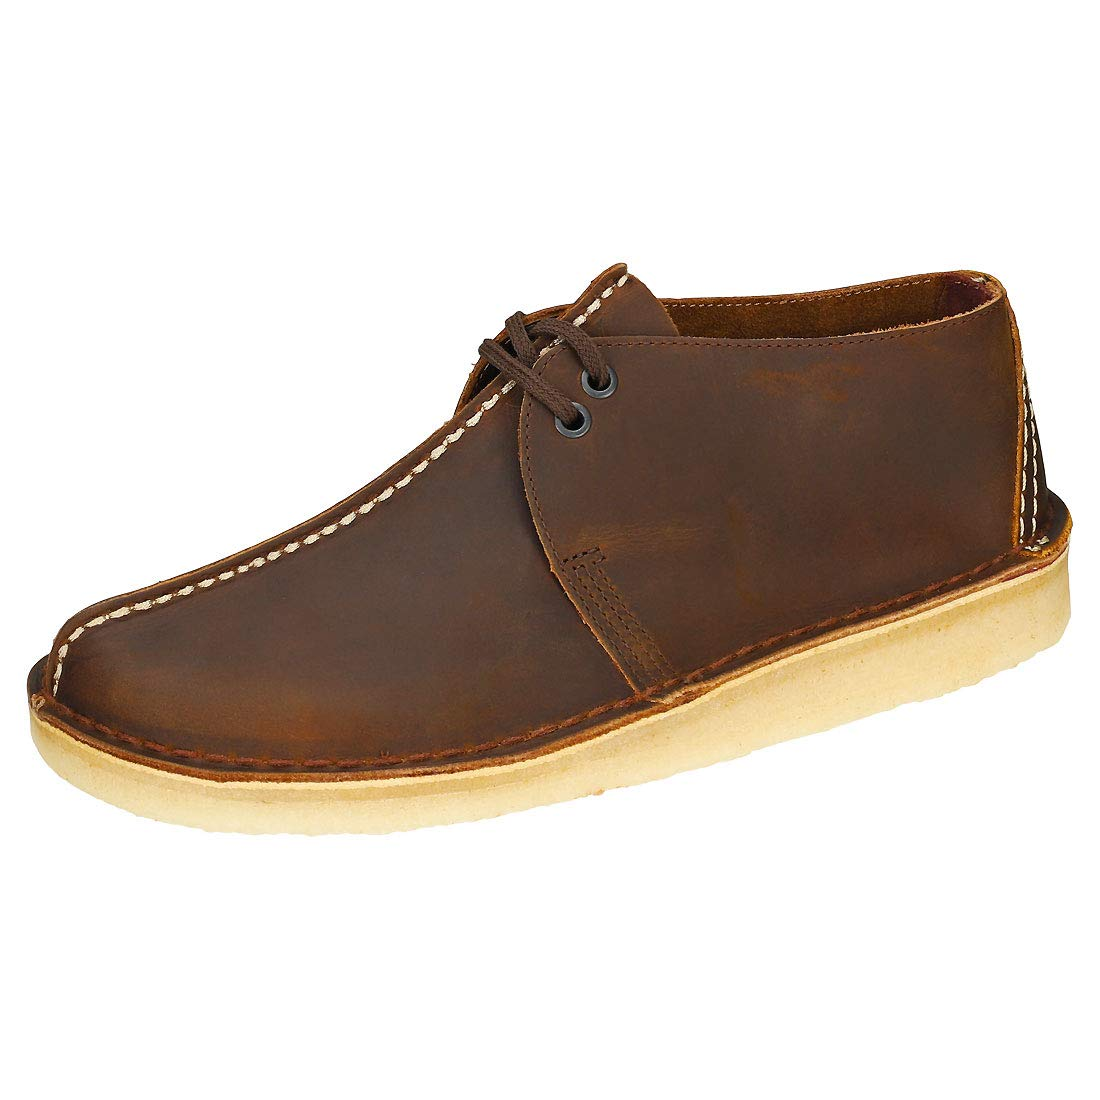 Clarks Originals Desert Trek 10 UK Beeswax